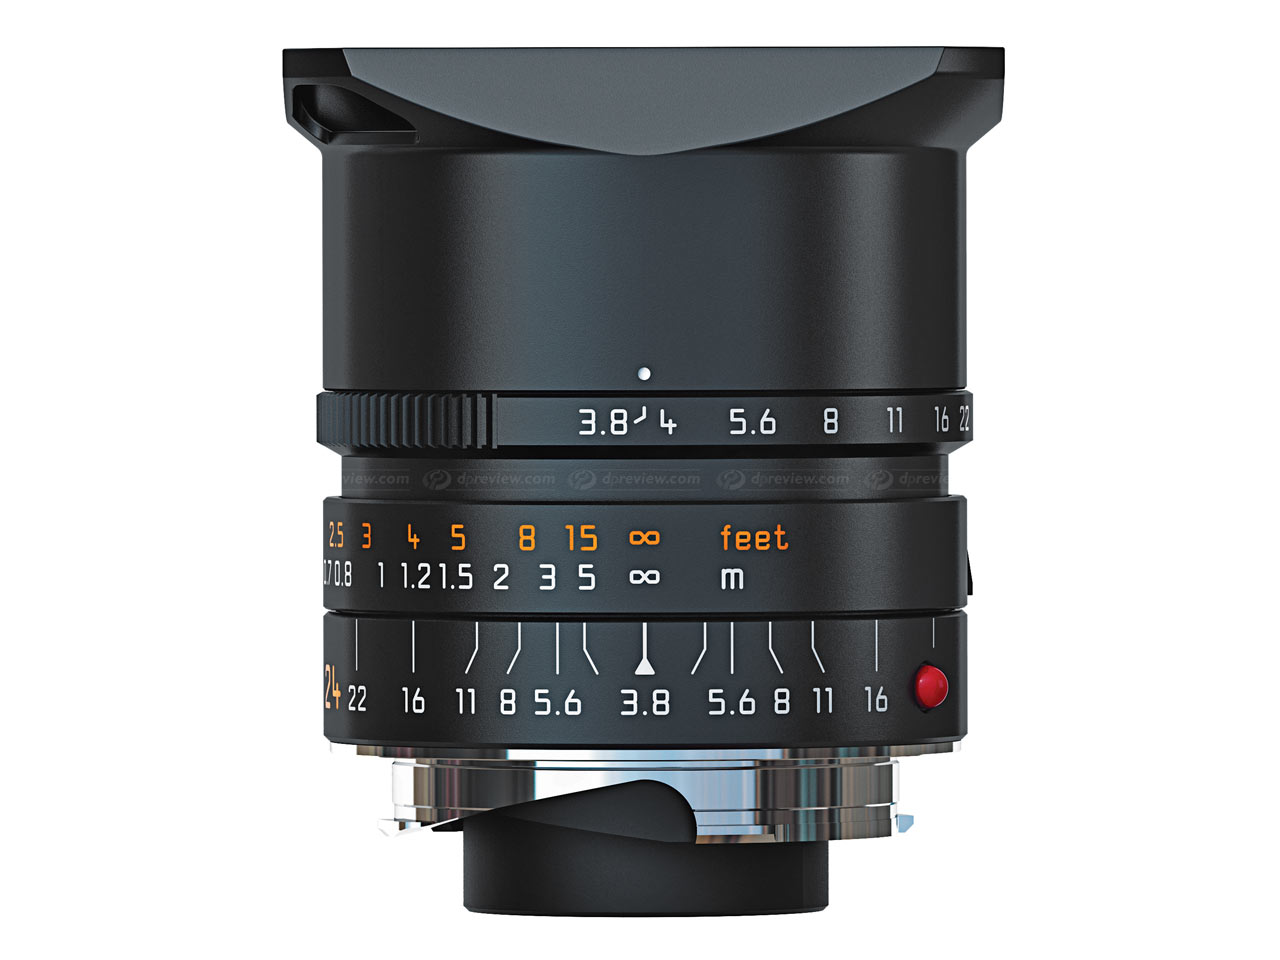 Three Prime lenses launched by Leica: Digital Photography Review